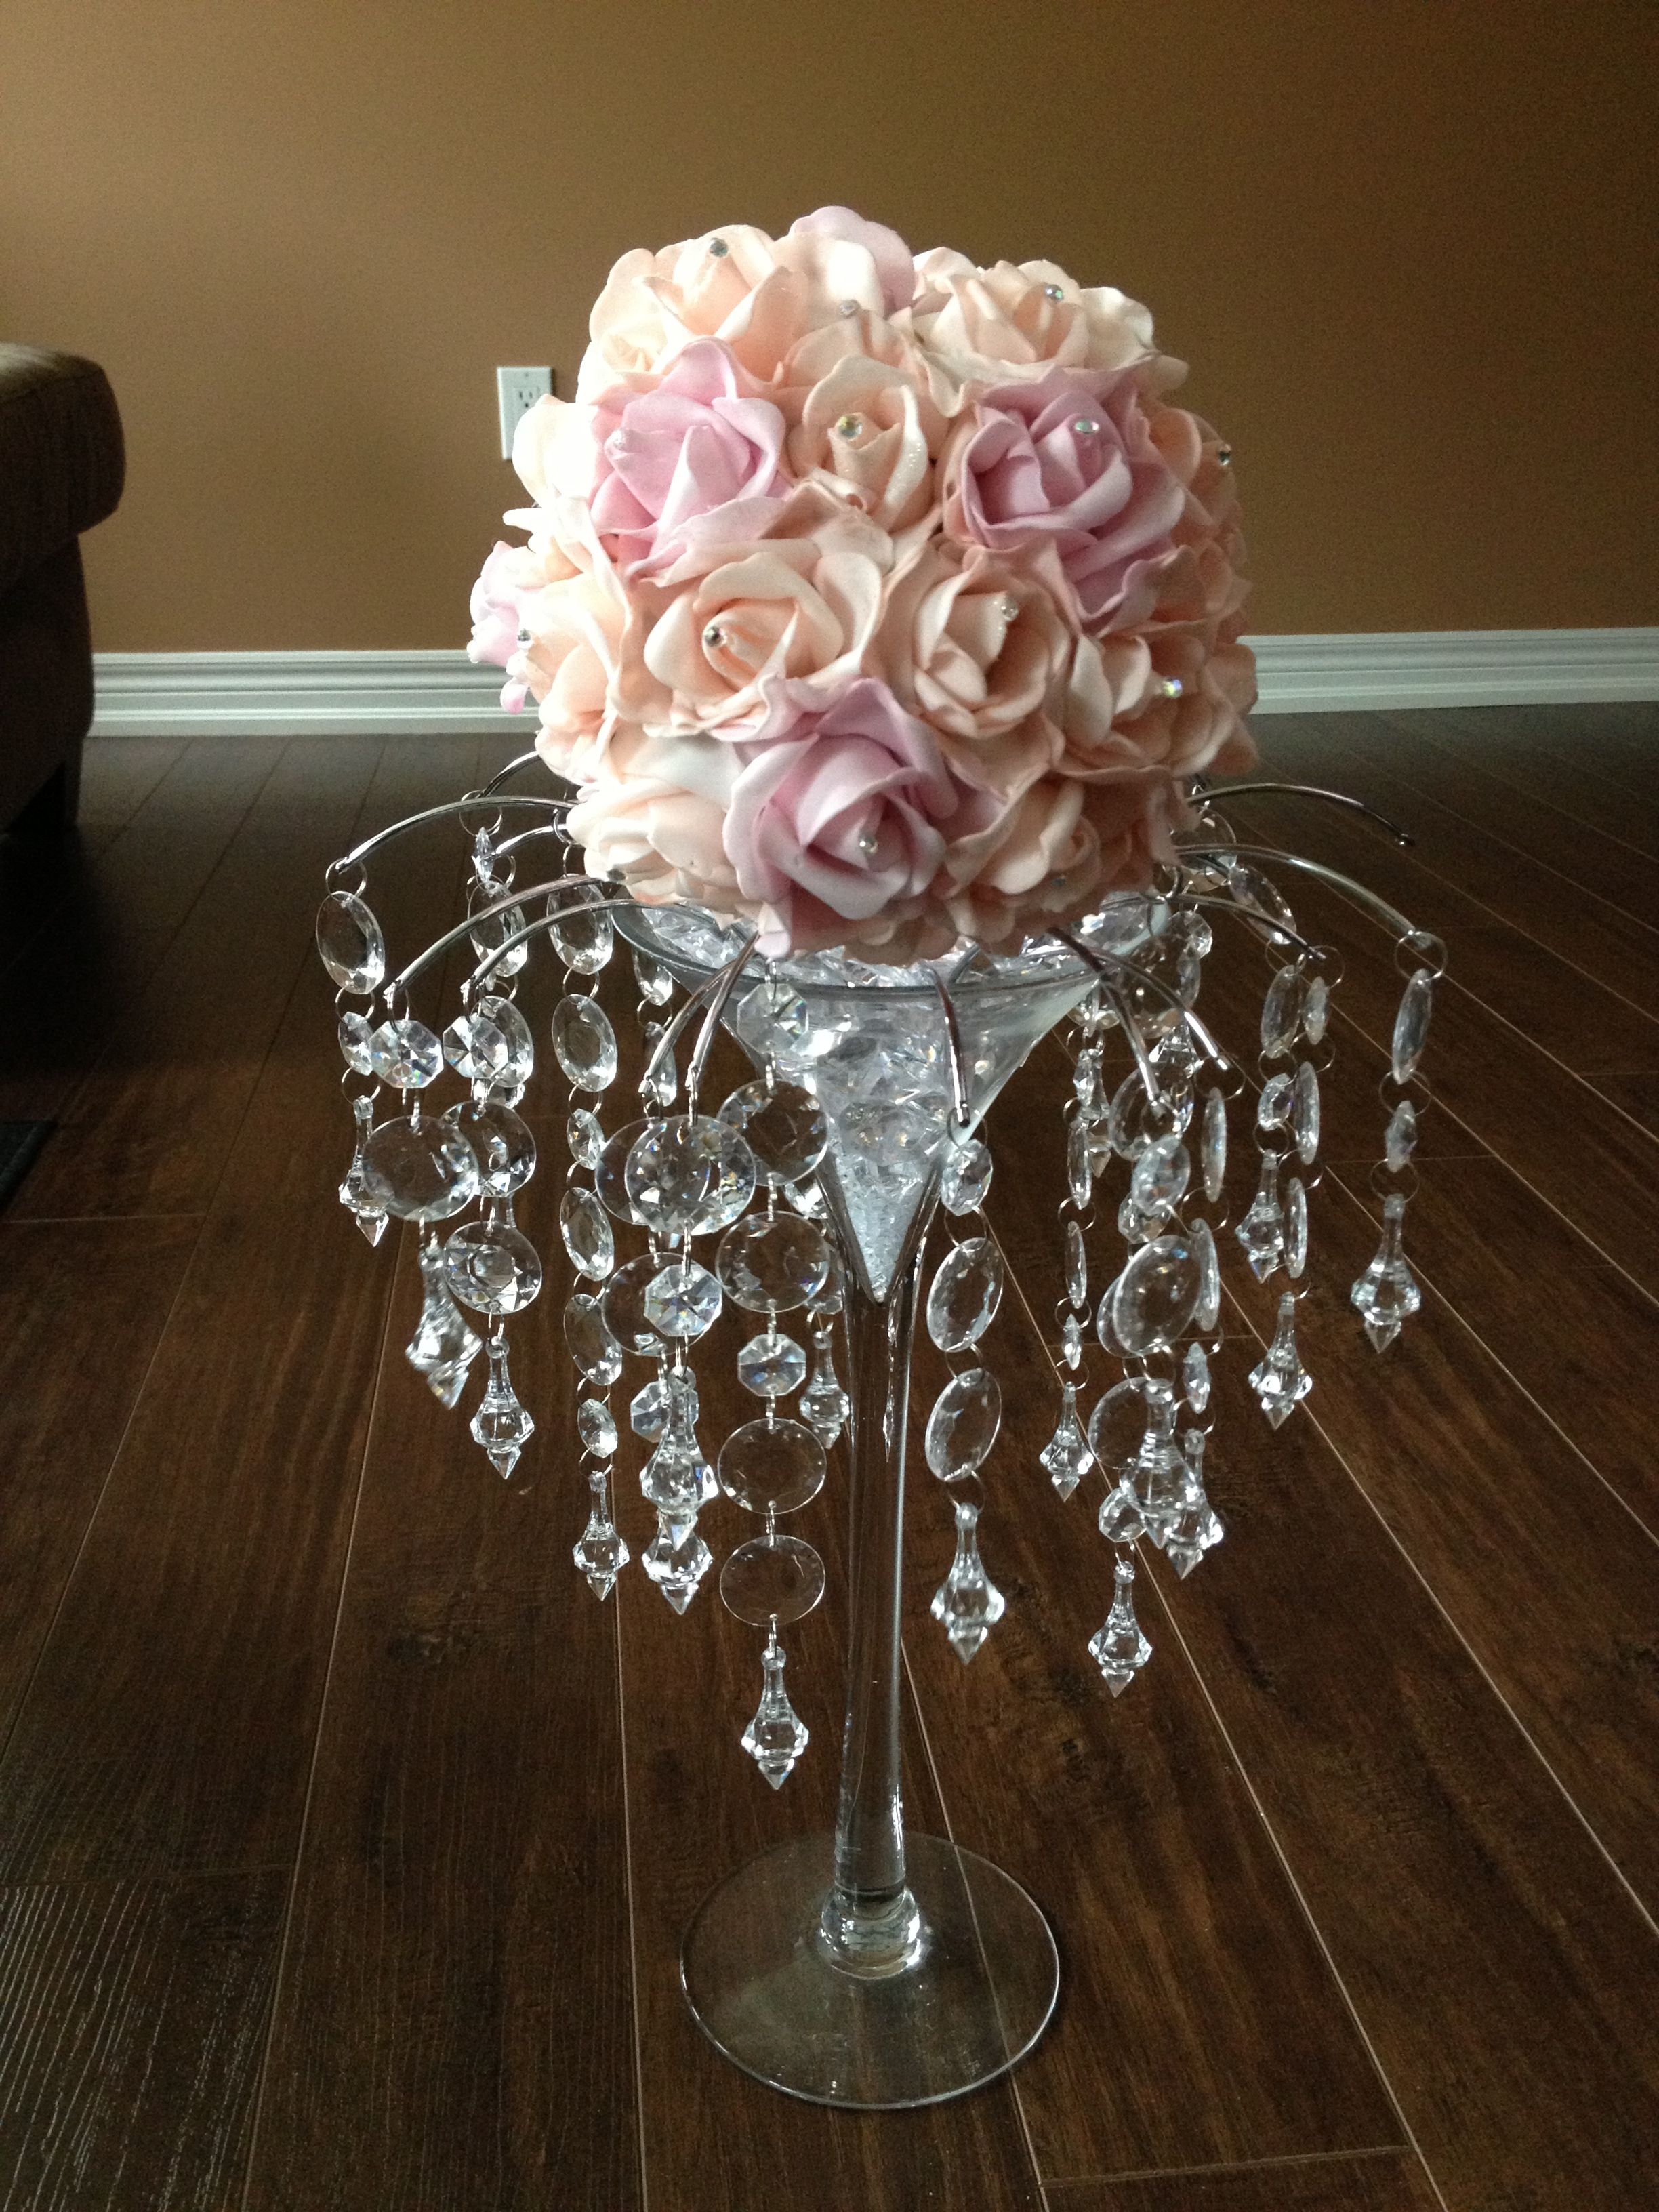 Pale peach and pink martini glass centerpiece with